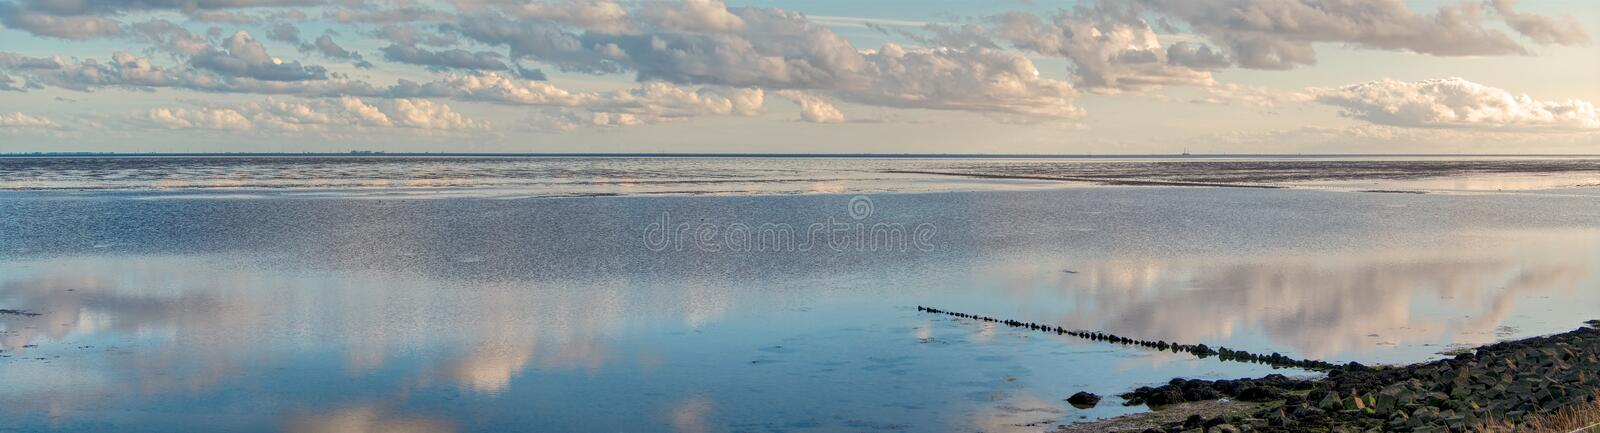 Terschelling panoramic view on Harlingen, Friesland, Netherlands royalty free stock photos